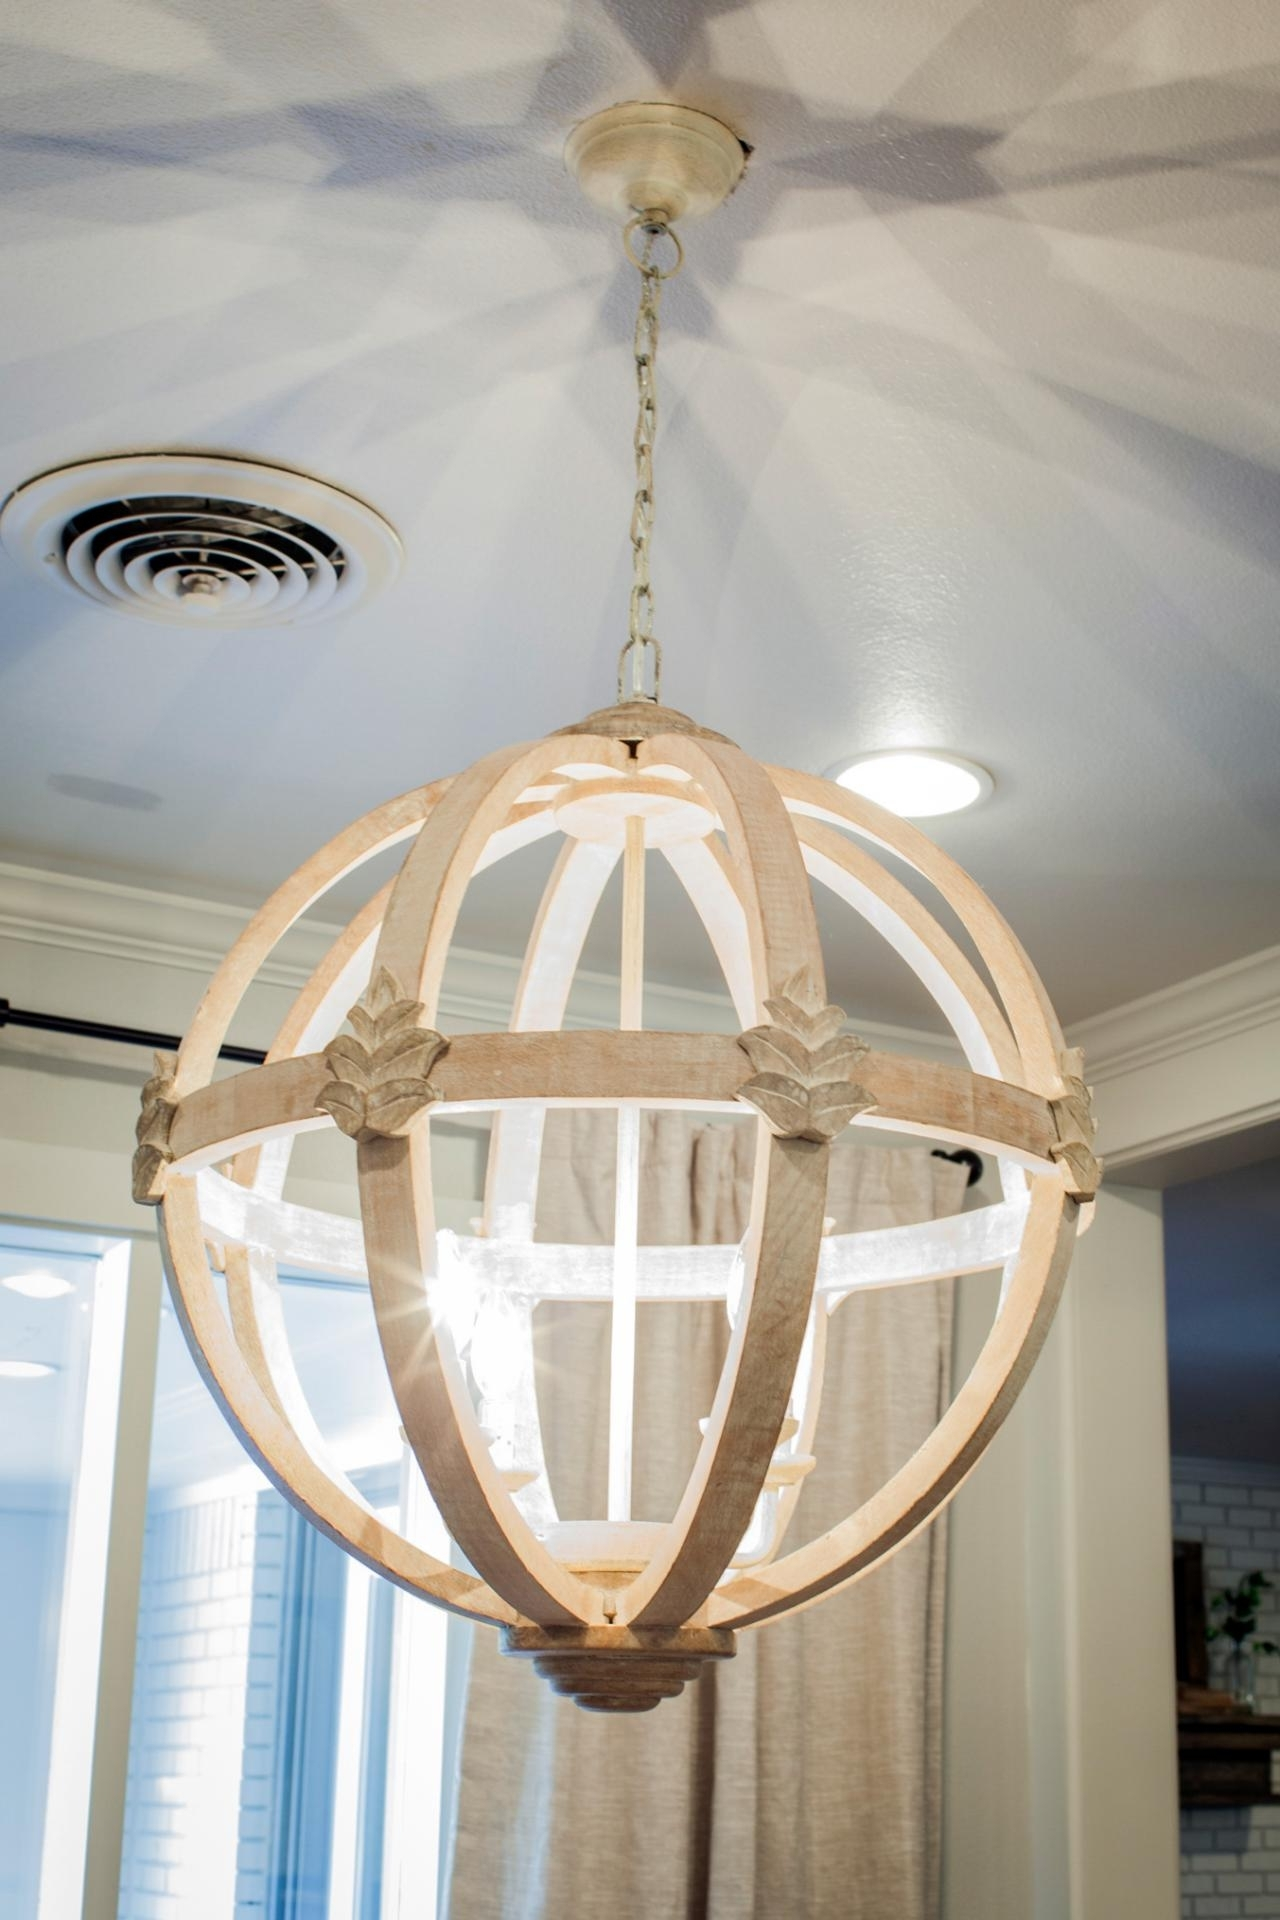 Wooden Chandeliers Regarding 2019 Lighting: Sophisticated Wooden Chandeliers For Home Accessories (View 19 of 20)